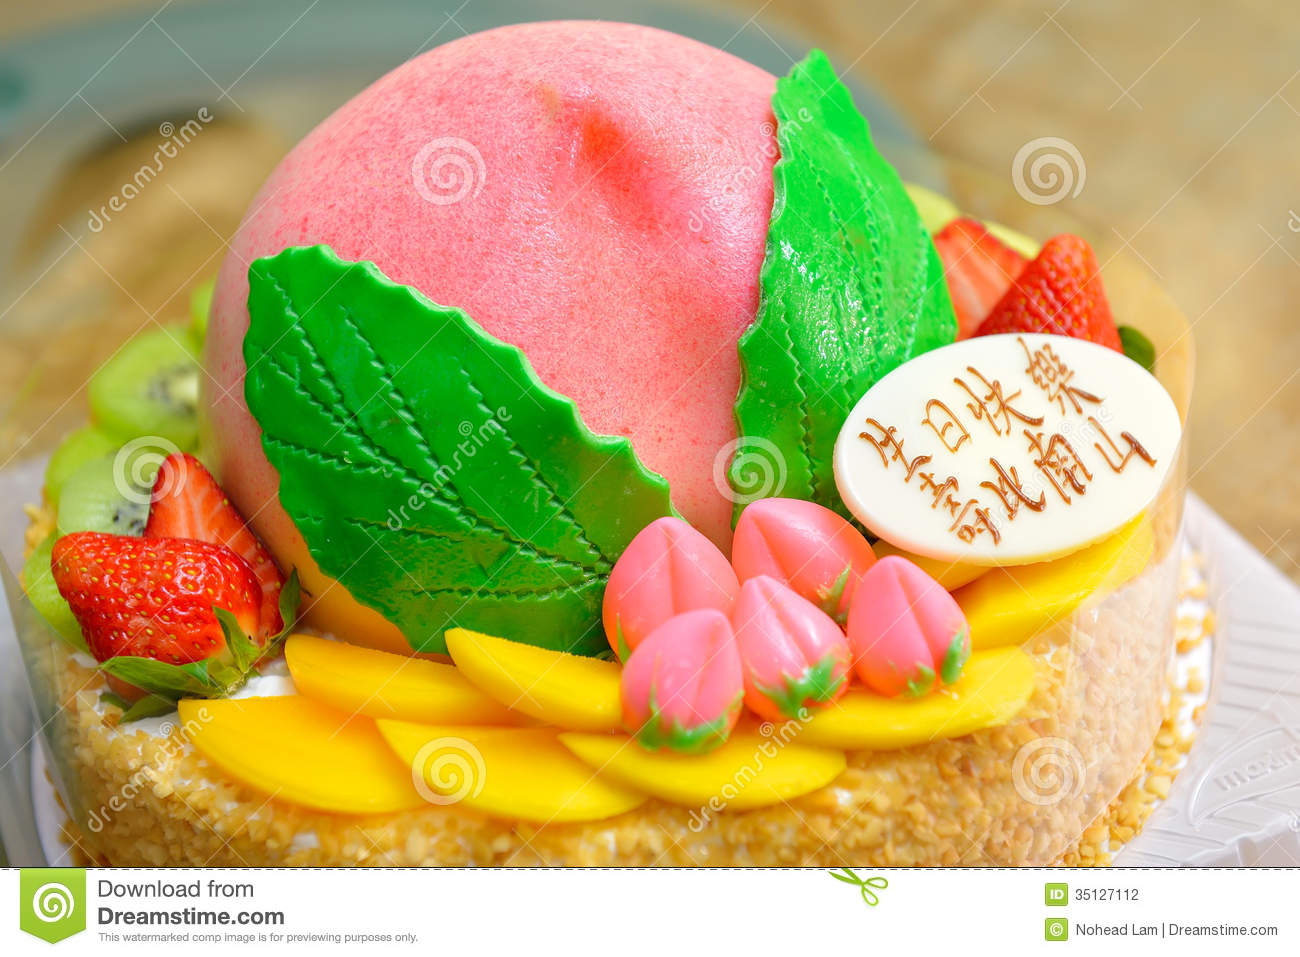 Birthday Cake Ideas For Elderly Man Dmost for